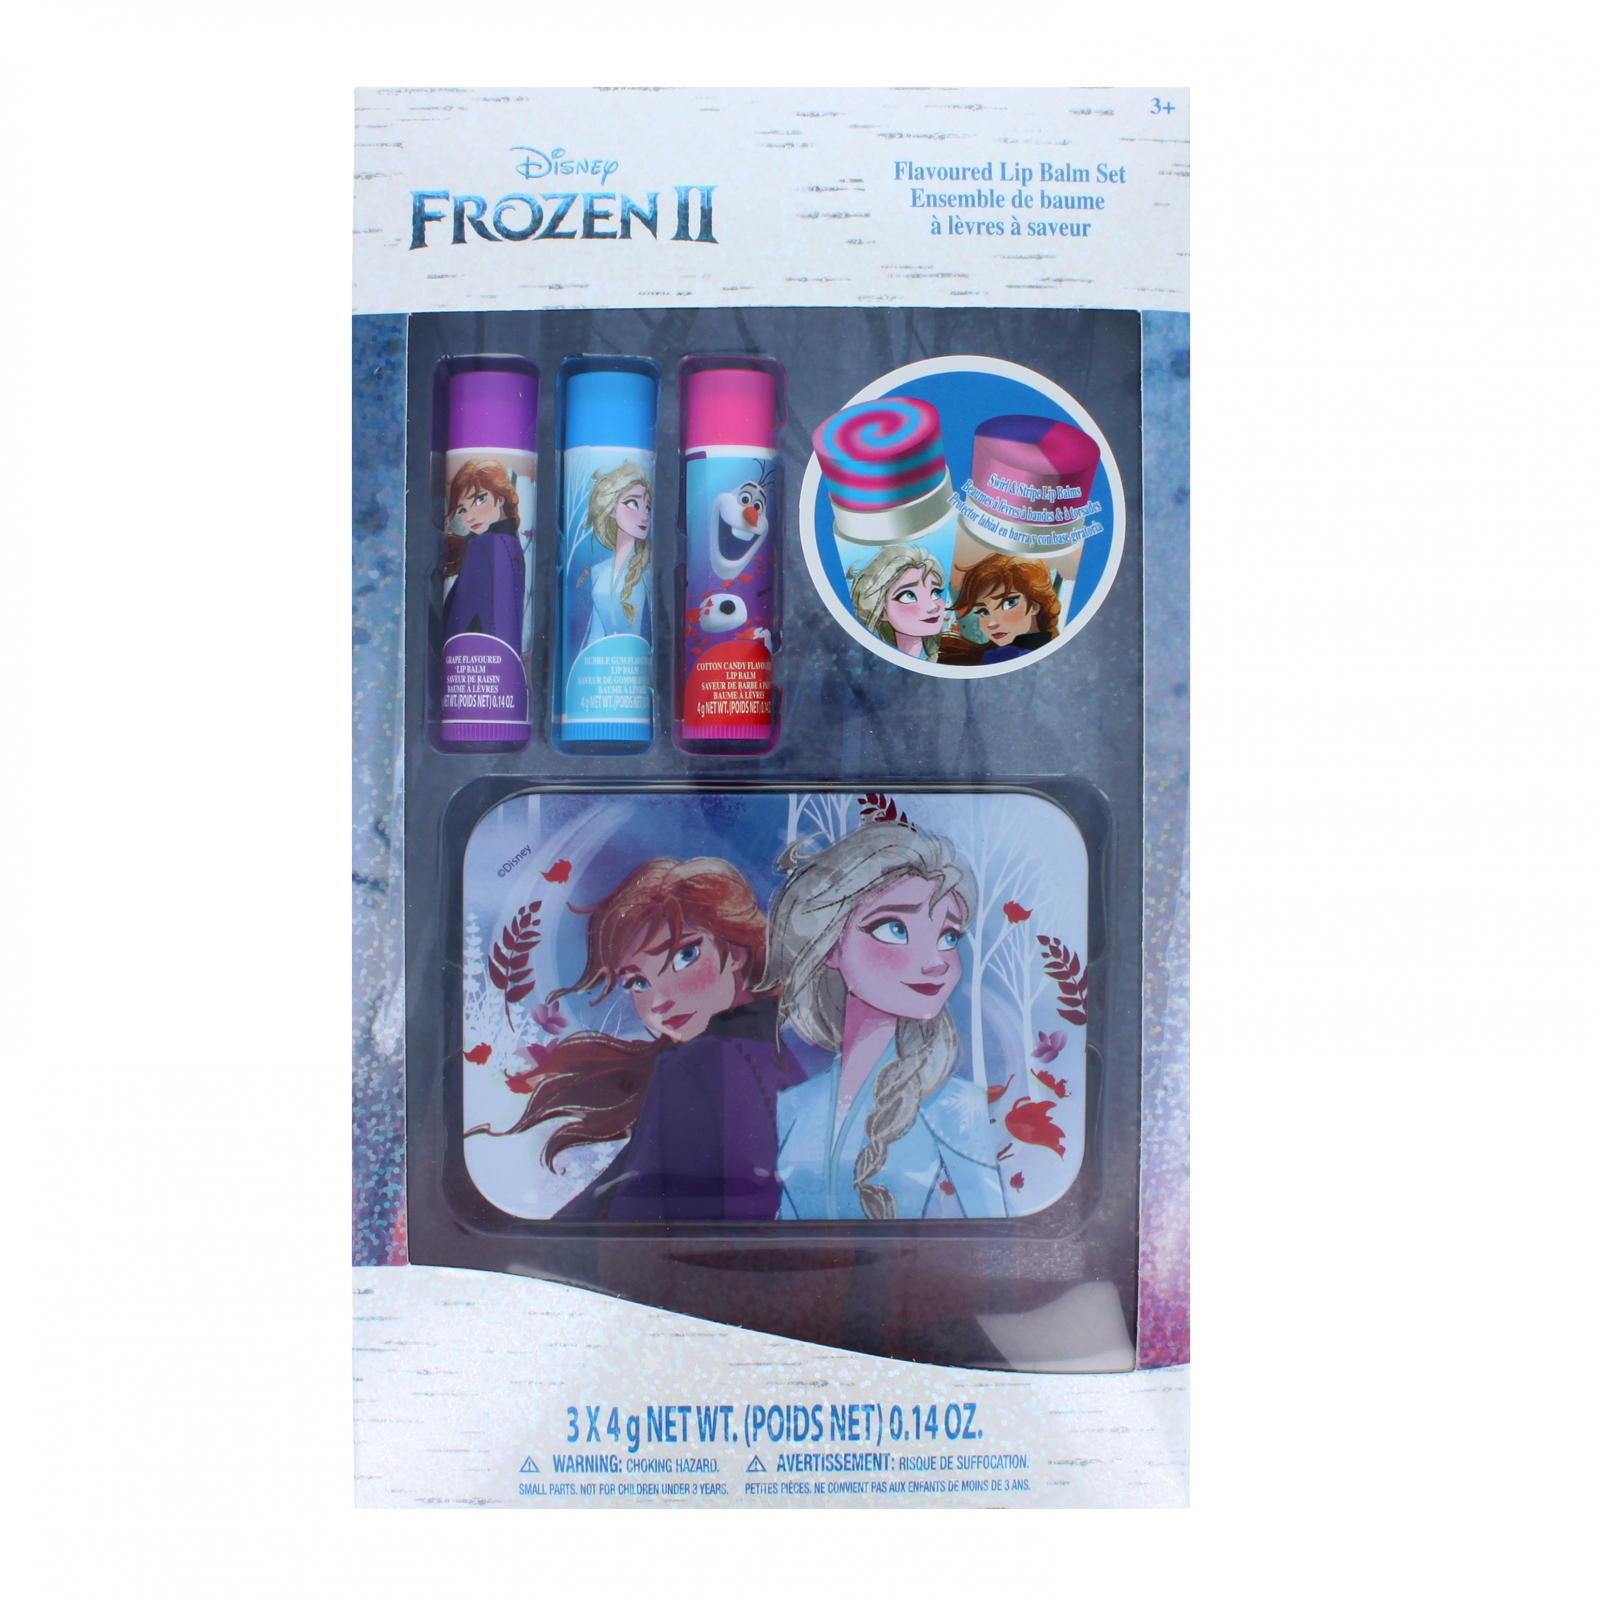 Disney Frozen 3 Pack Flavored Lip Balm Set with Metal Tin